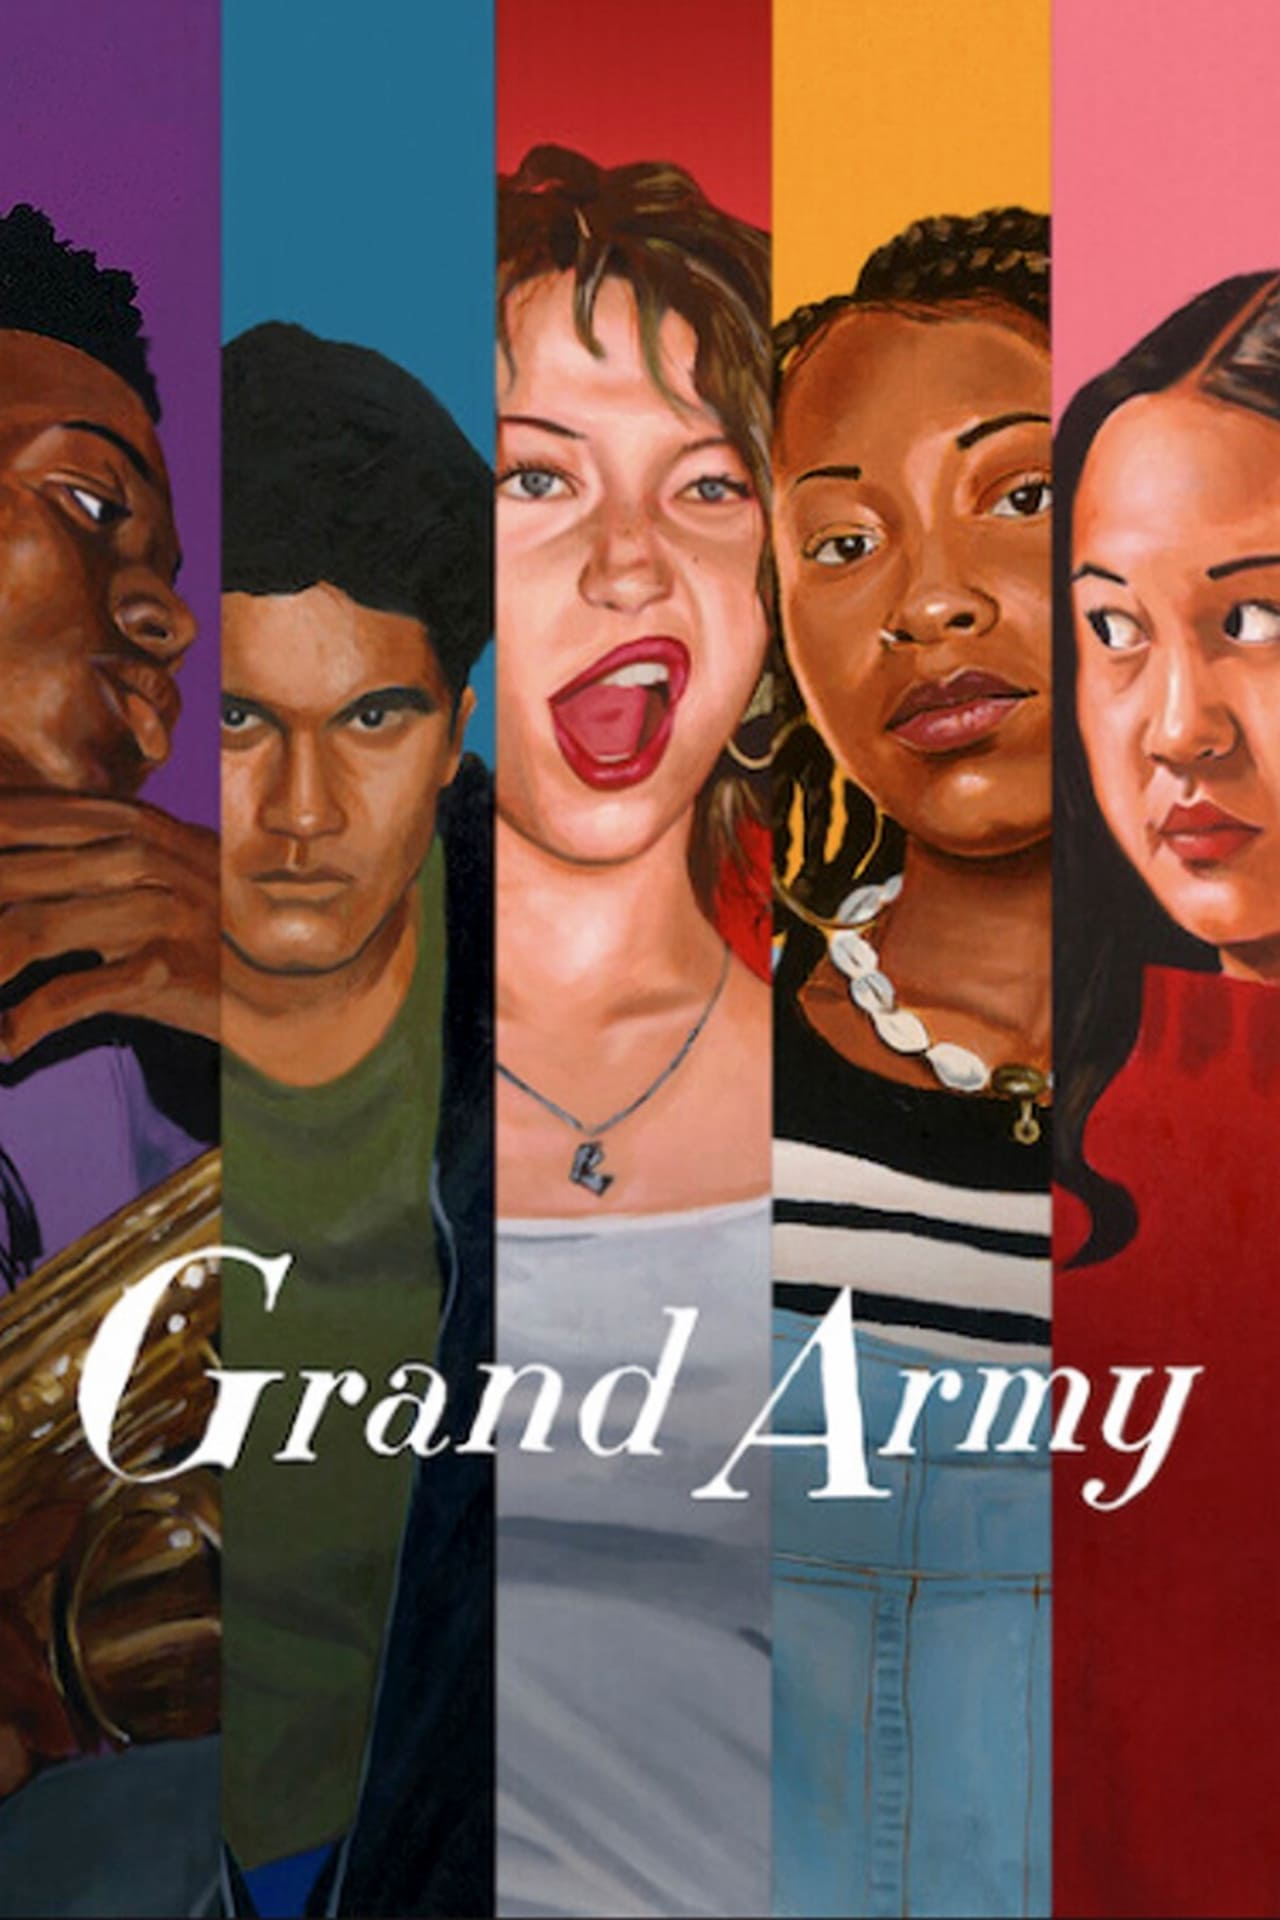 Download NetFlix Grand Army 2020 (Season 1) Dual Audio {Hindi-English} 720p WeB-DL HD [350MB]